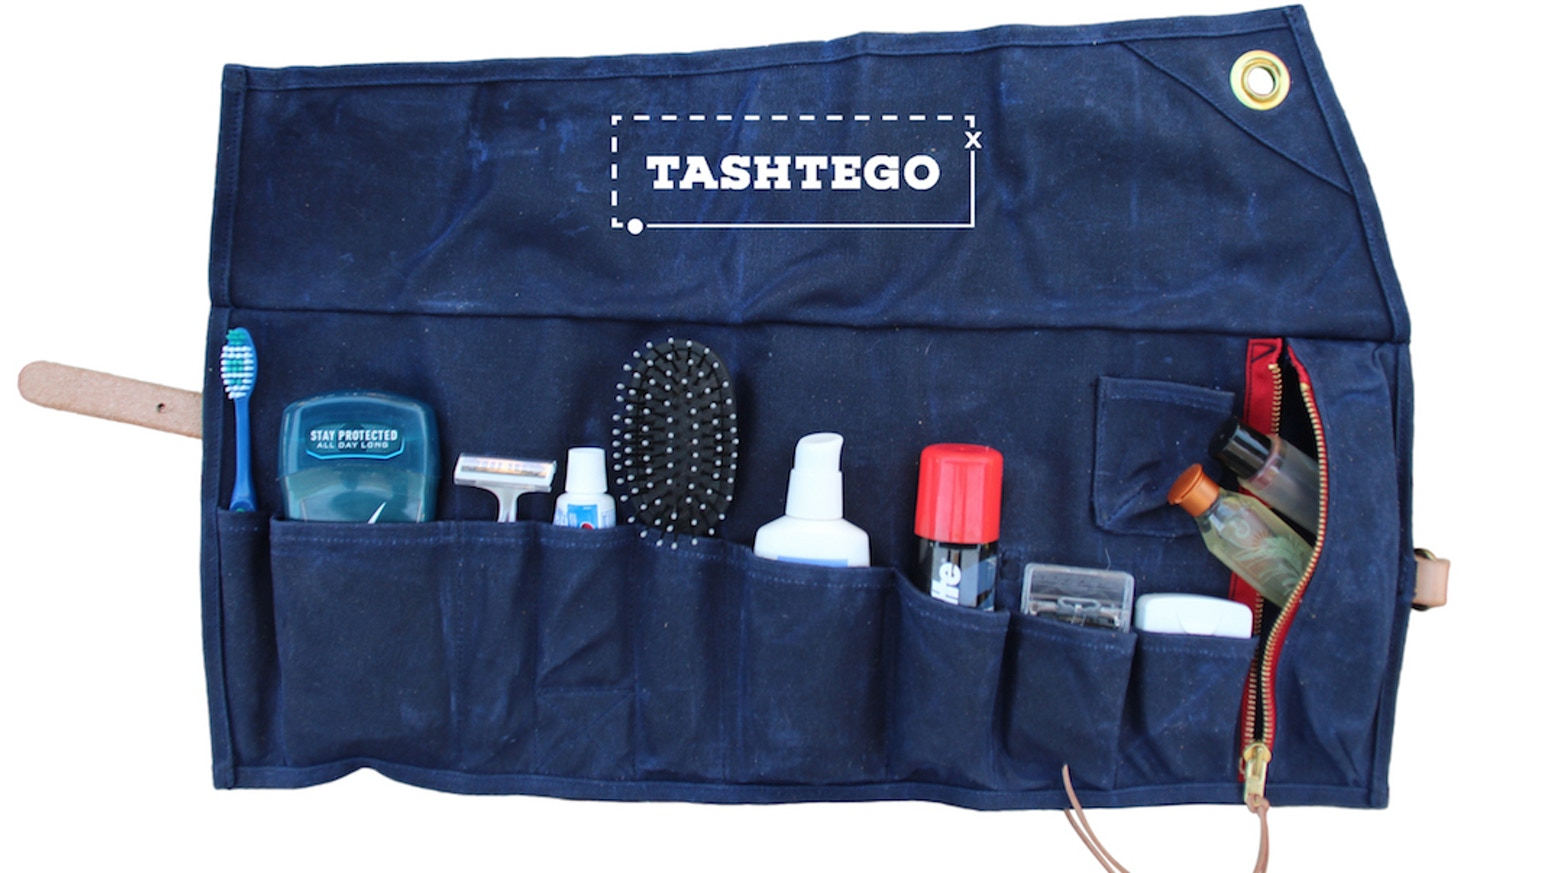 a6e8bfdc5c6a The Tashtego Travel Kit is the roll-up toiletry kit for avid adventurers.  Our